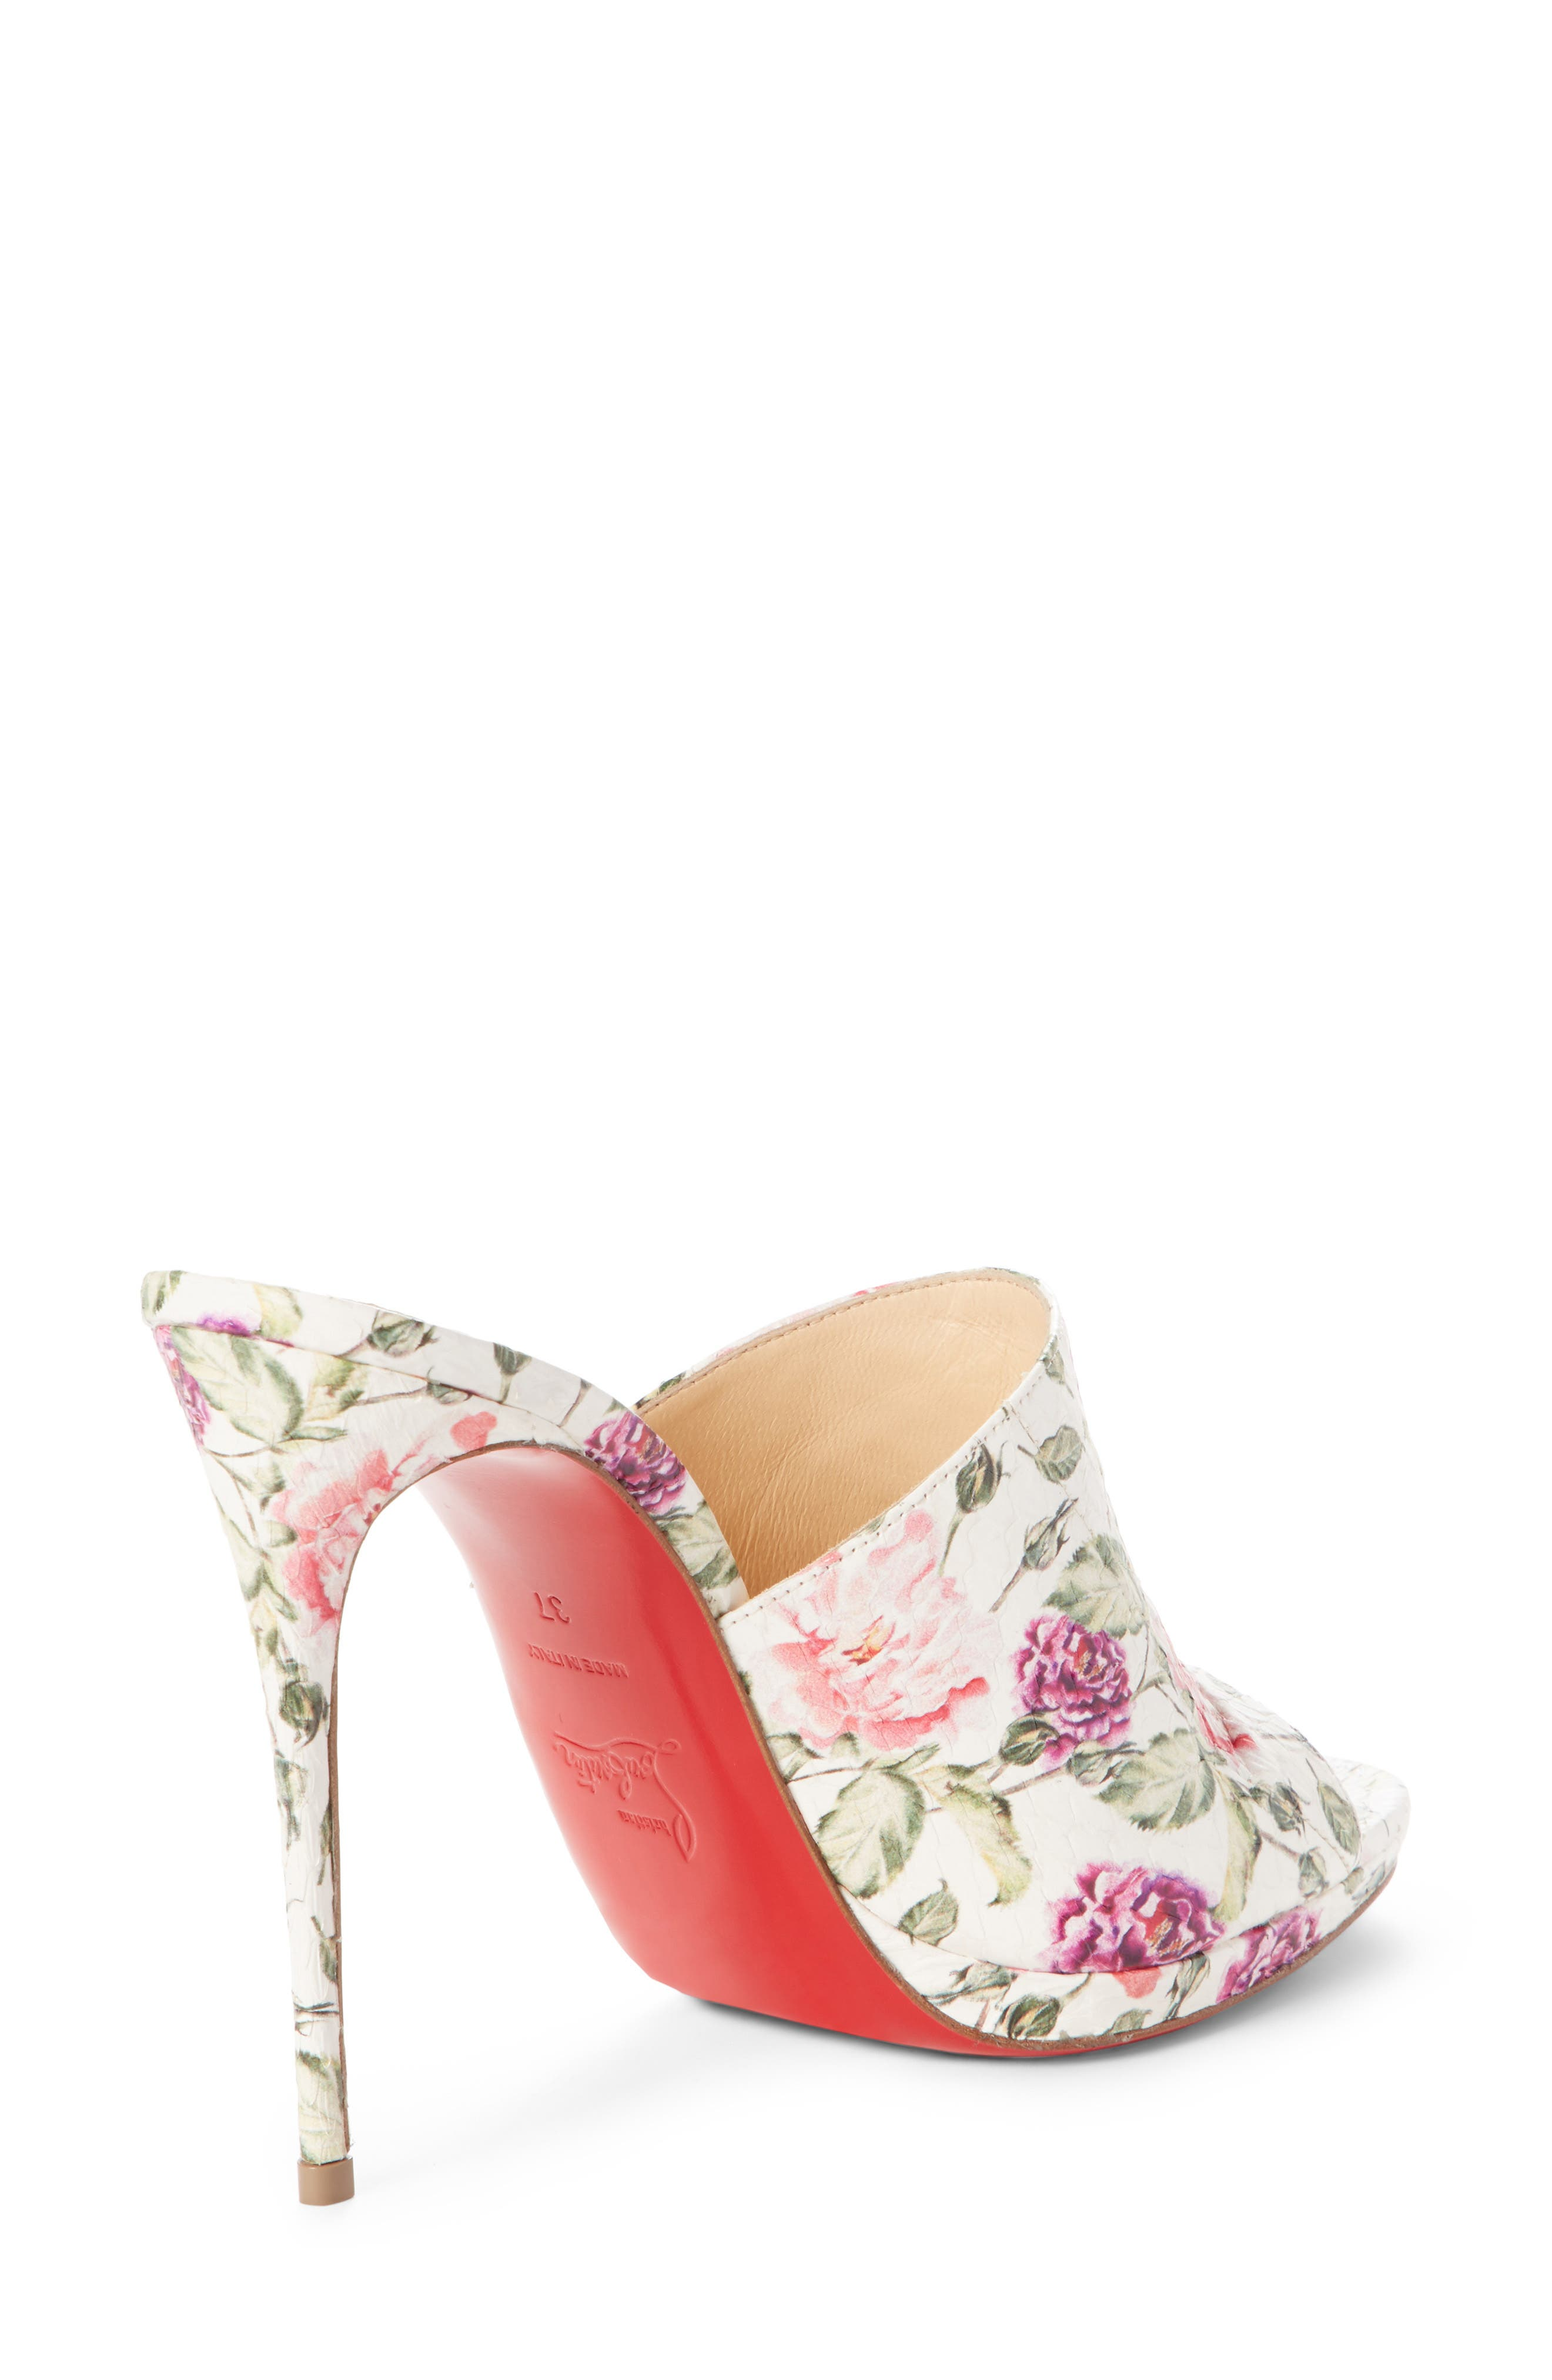 Floral Pigalle Genuine Snakeskin Mule,                             Alternate thumbnail 2, color,                             Latte/ Floral Print